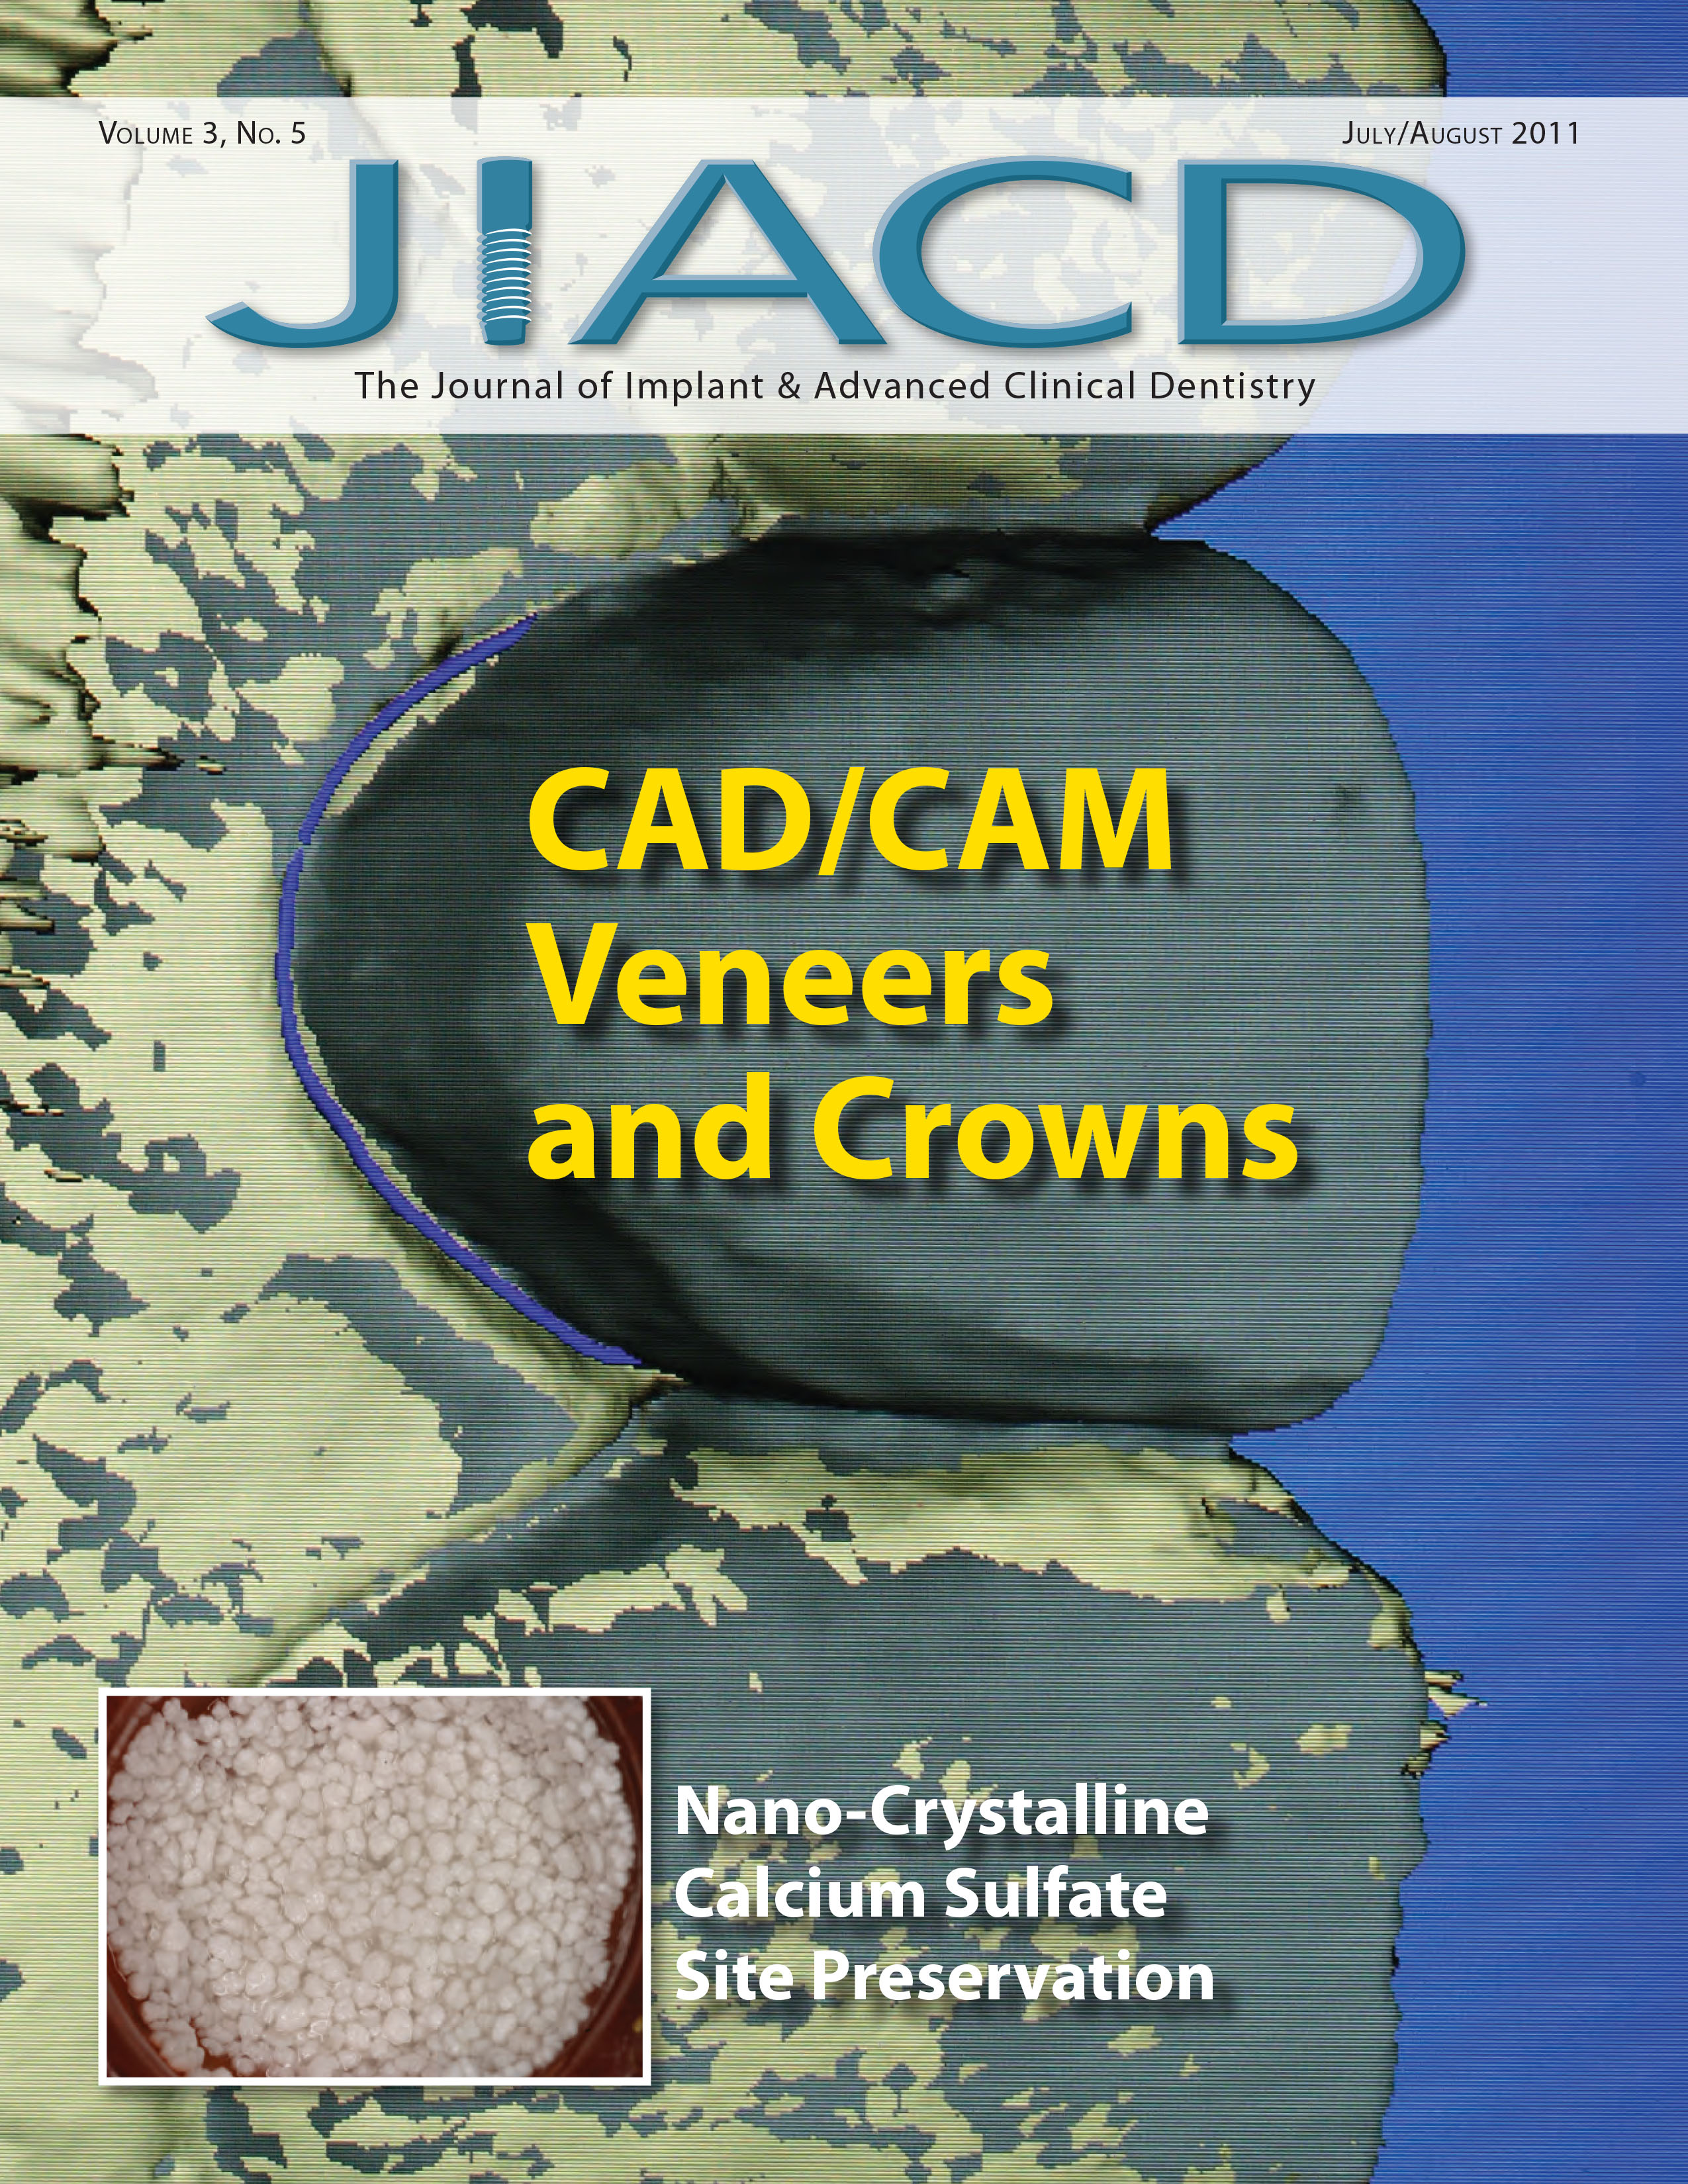 CAD/CAM Veneers and Crowns